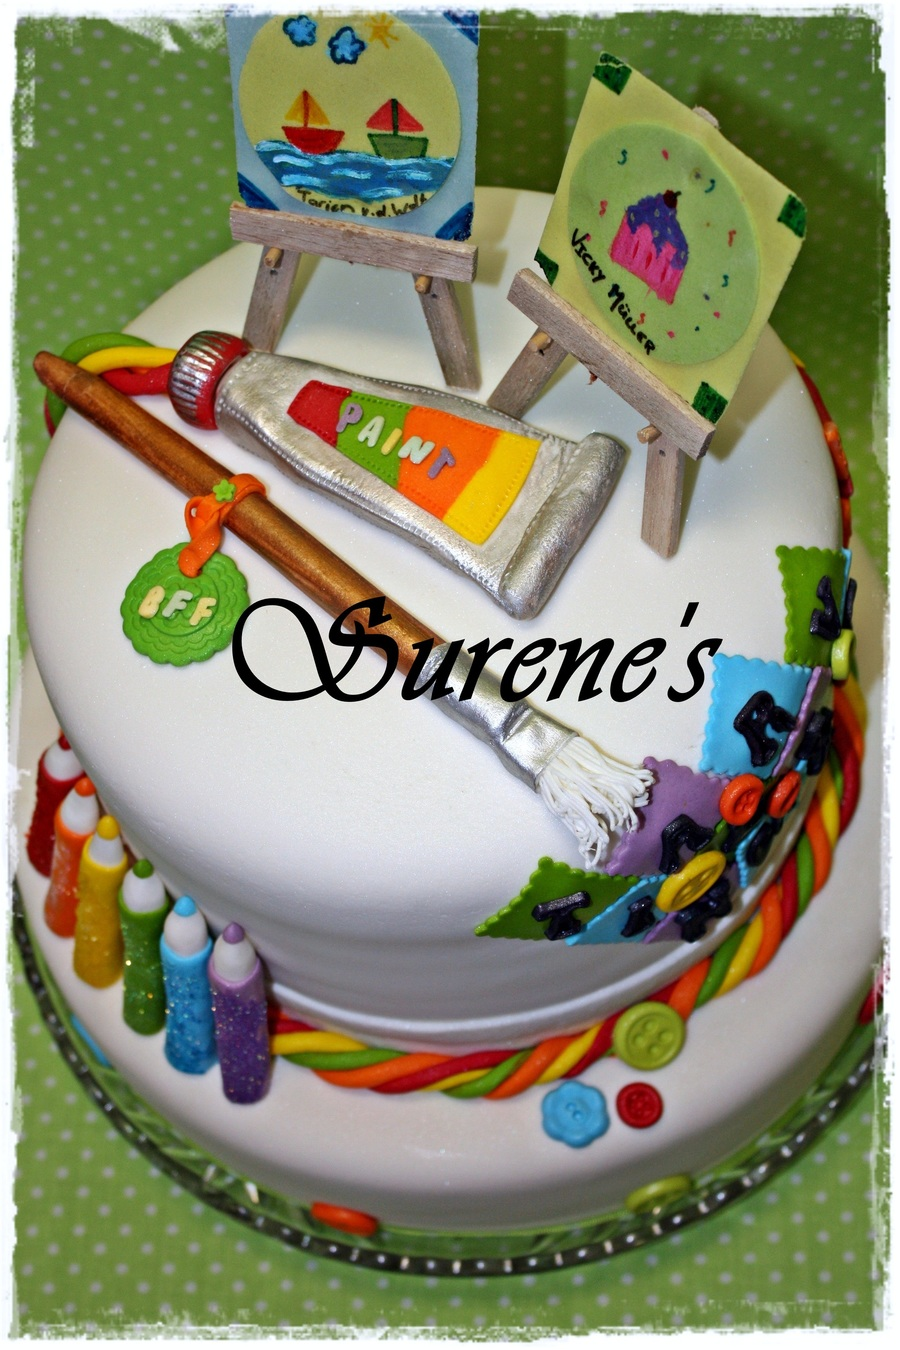 Birthday Cake Art And Craft : Arts & Crafts Cake - CakeCentral.com